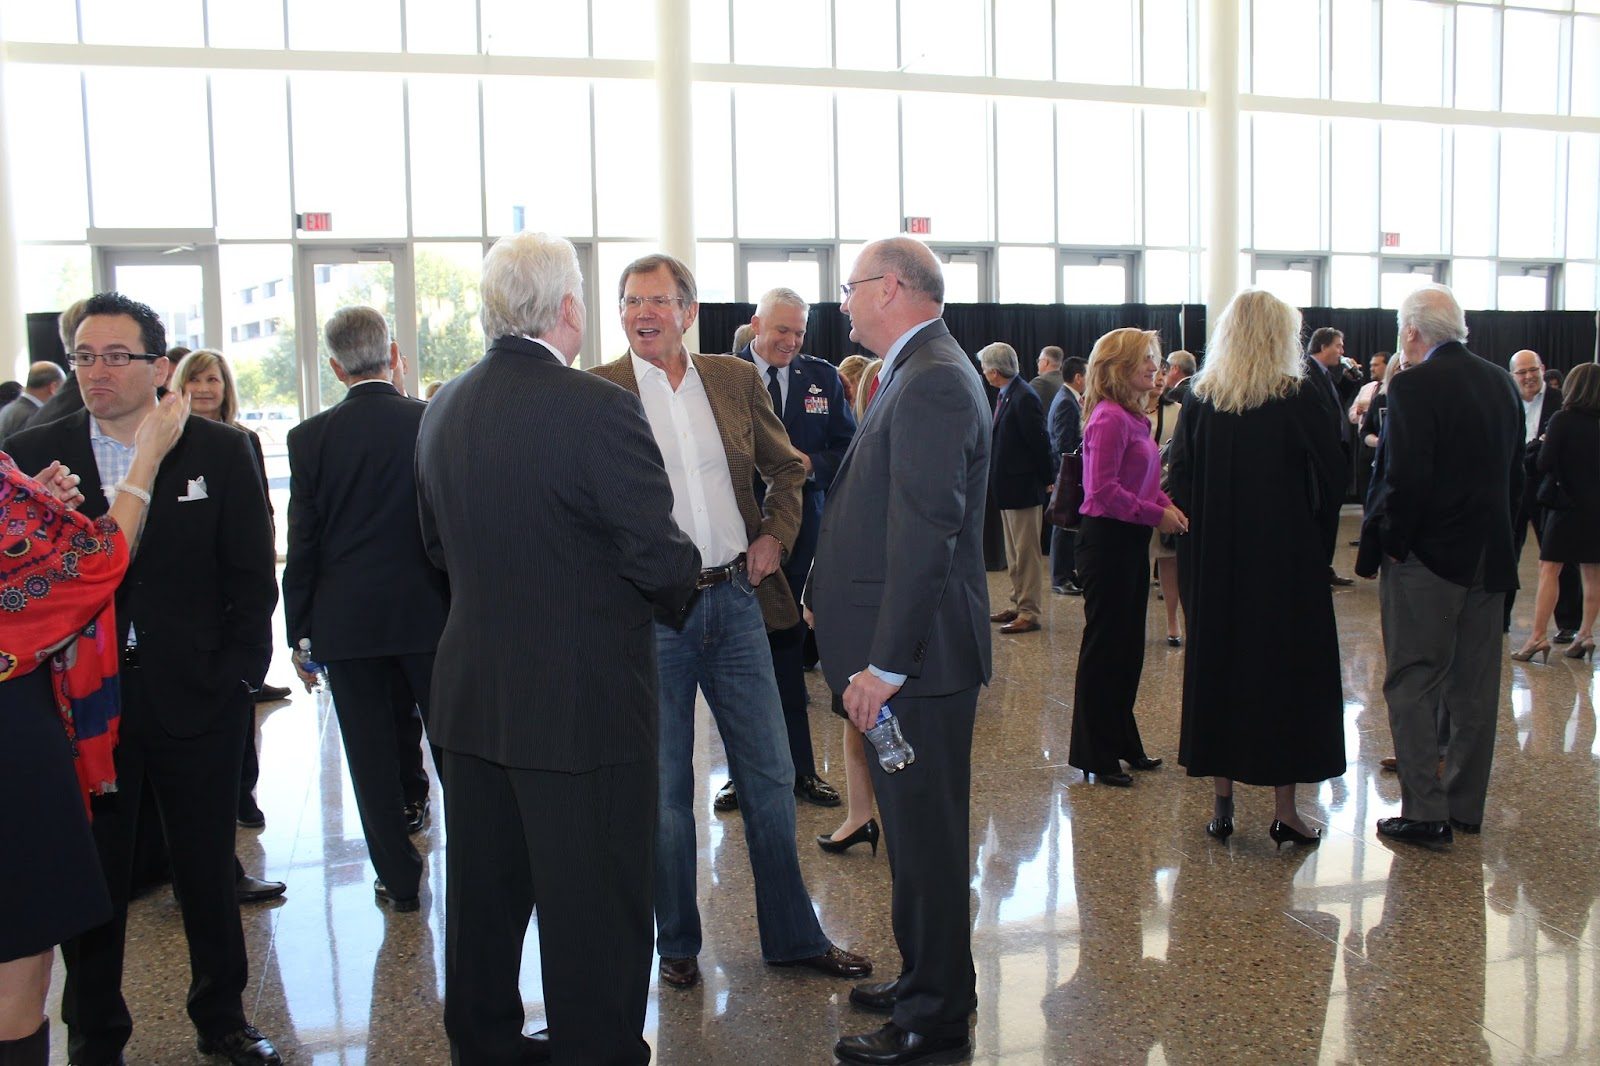 2016 State of the State - IMG_1434.JPG